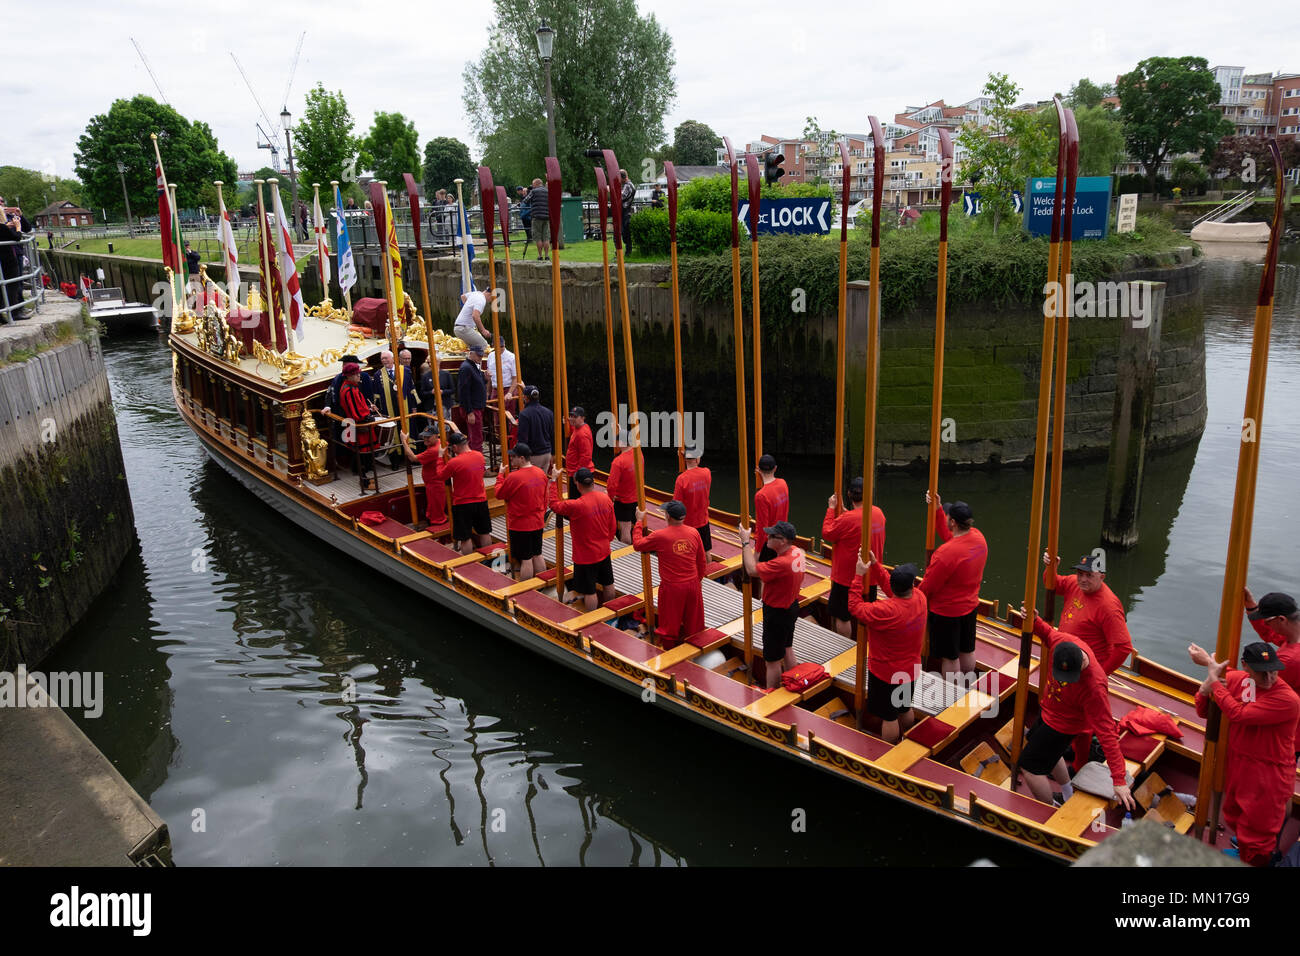 London, UK. 13th May, 2018. thames waterman accopmany the Glorian which transports a stela between hampton court palace and tower of london ceremonial each year Credit: Lisa Edie/Alamy Live News Stock Photo